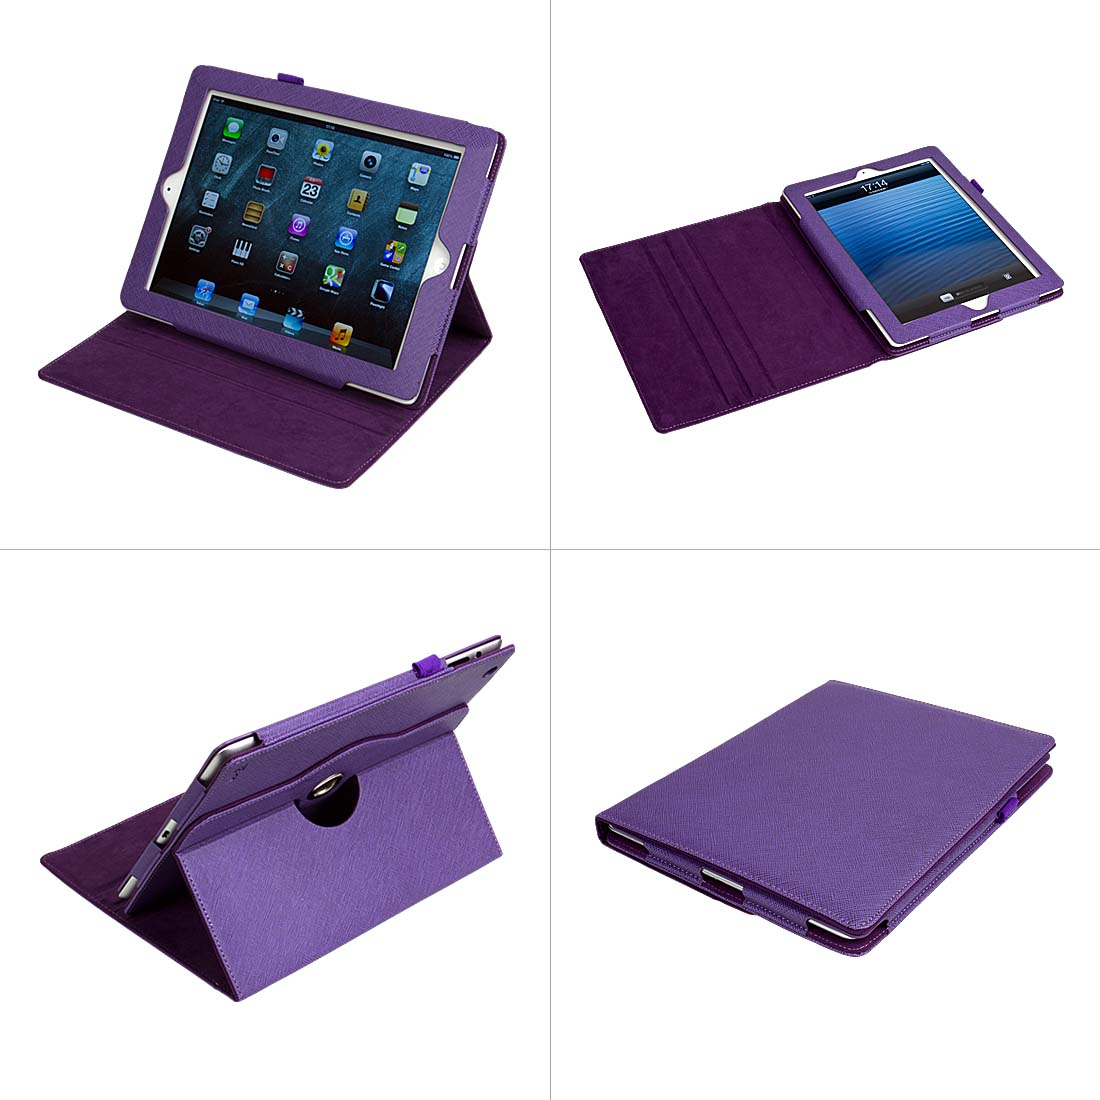 Bundle Monster Rotating Landscape View Protection Case for Apple Ipad 4 Tablet